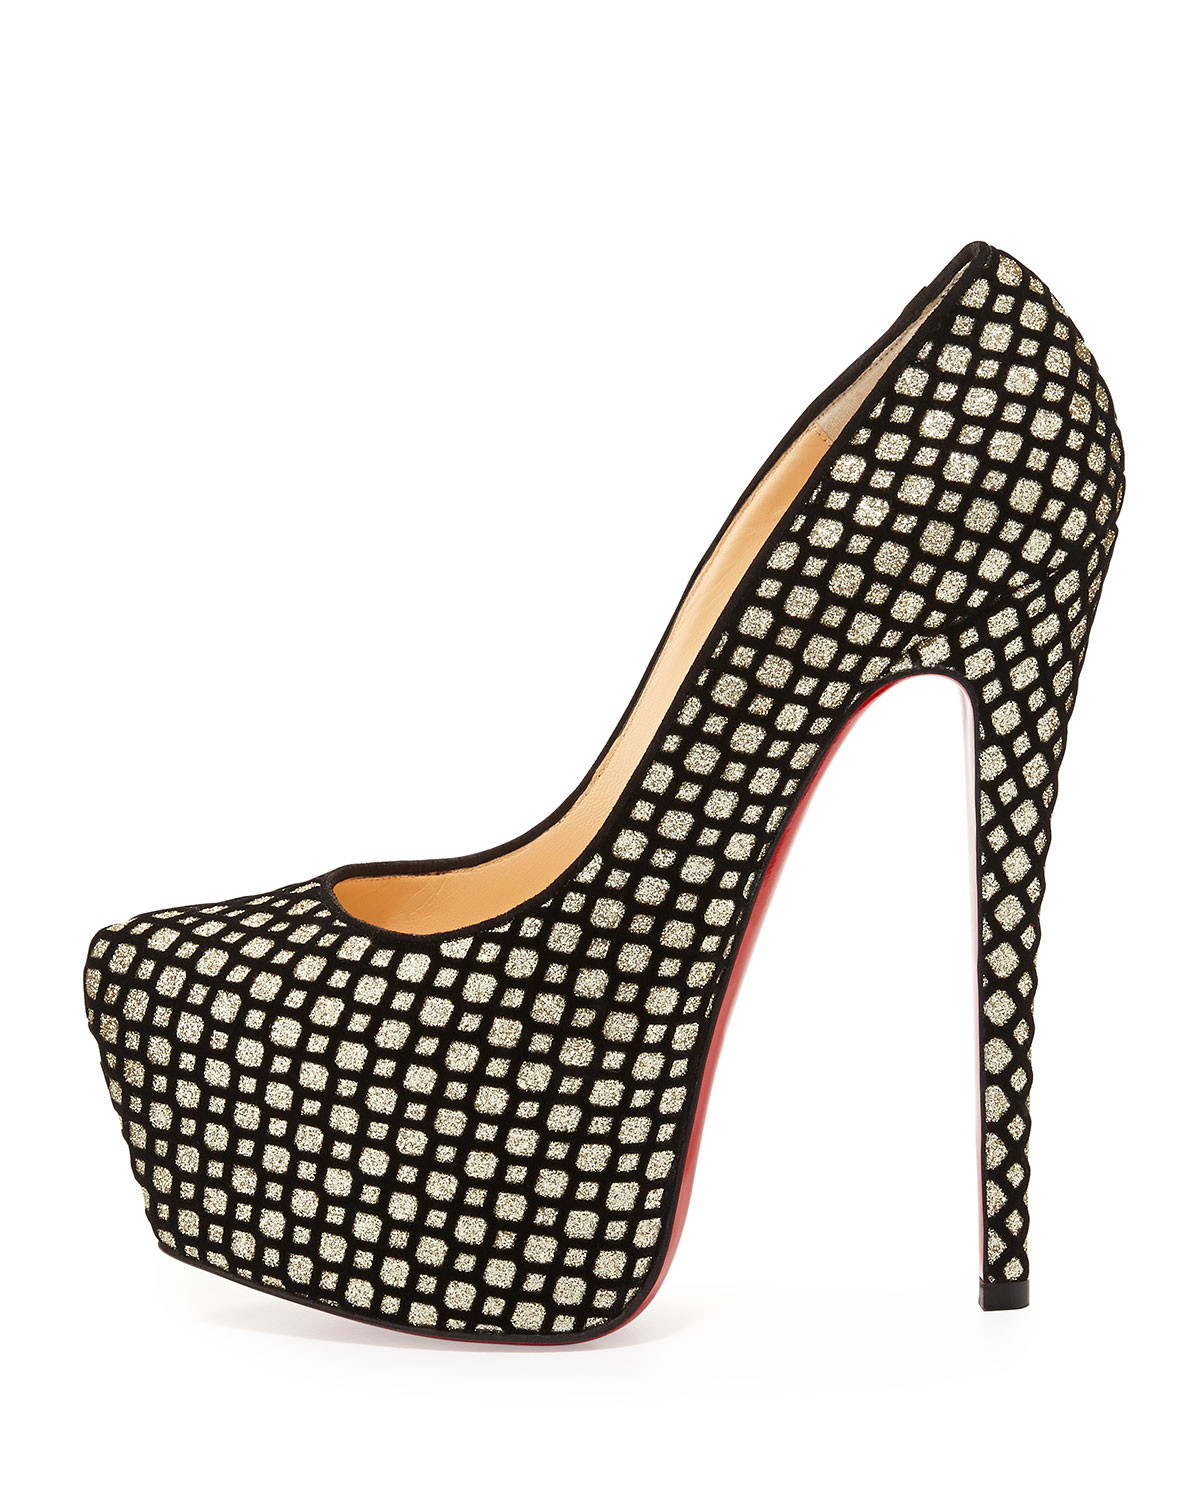 6f821cdebfb6 Lyst - Christian Louboutin Daffodile Glitter Suede Red Sole Platform ...